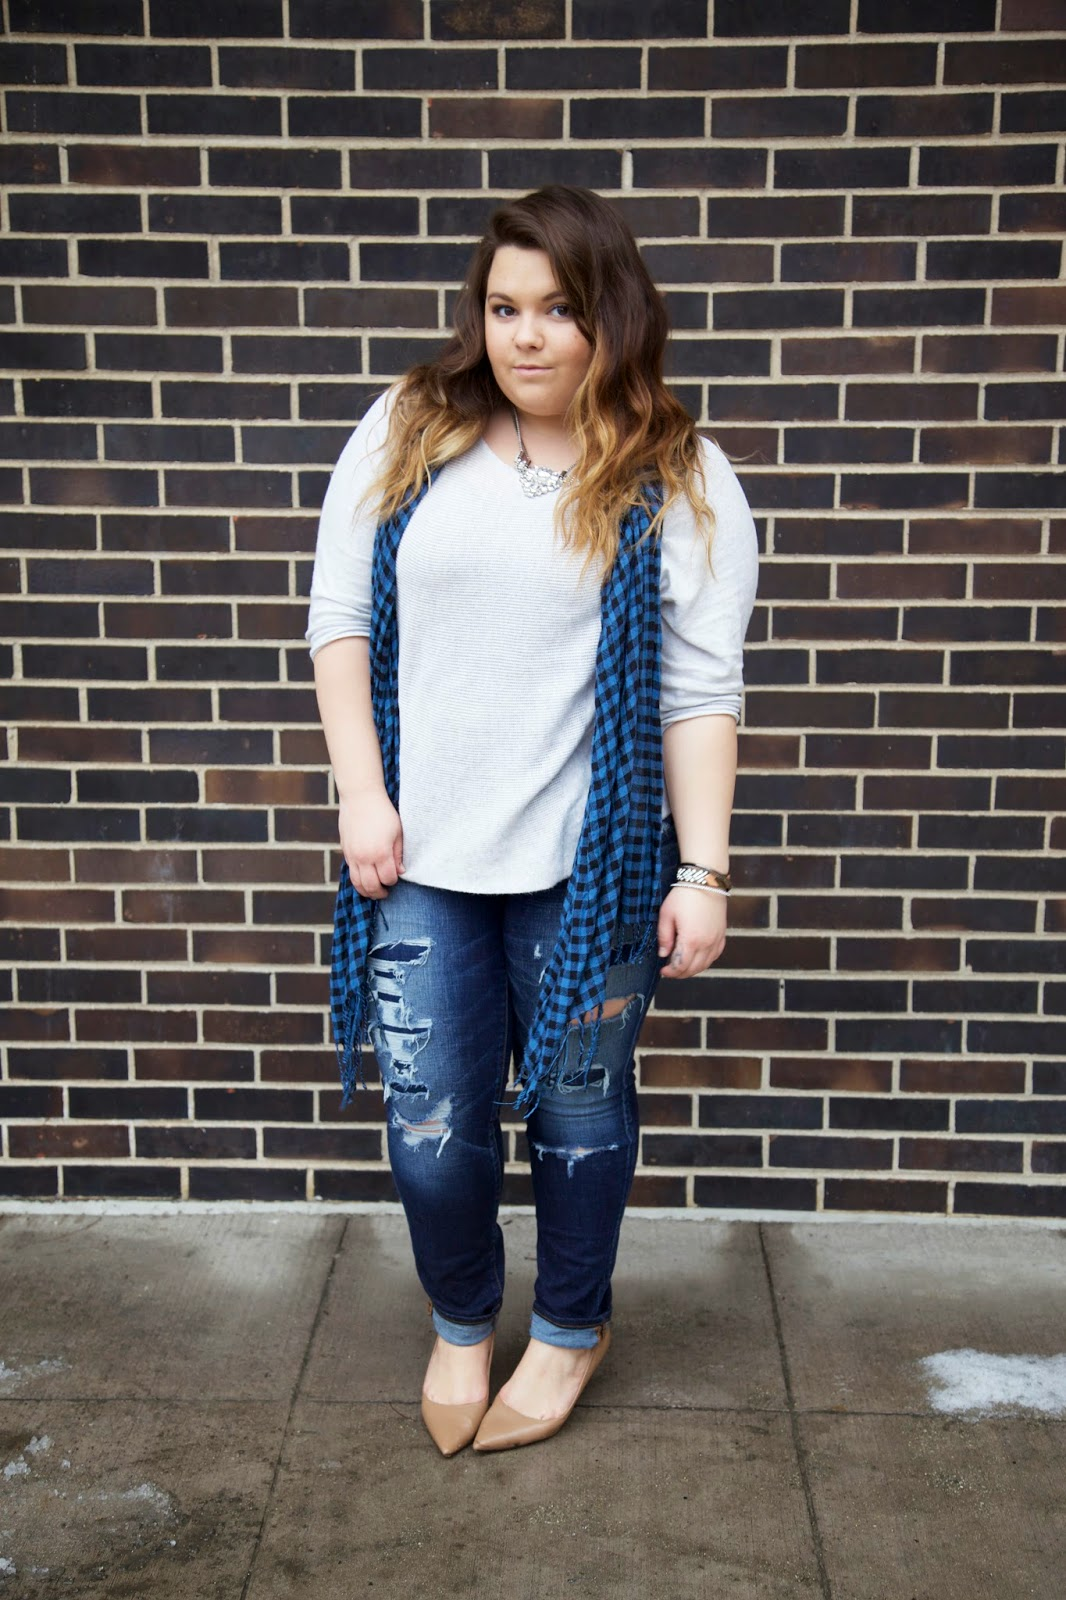 BKE jewelry, plus size fashion blogger, chicago fashion, winter fashion, checkered scarf, sweater season, ripped denim, american eagle jeans, natalie craig, natalie in the city, curvy women, bbw, fatshion, ombre hair, forever 21, blogger, body positivity, fat acceptance movement, curves